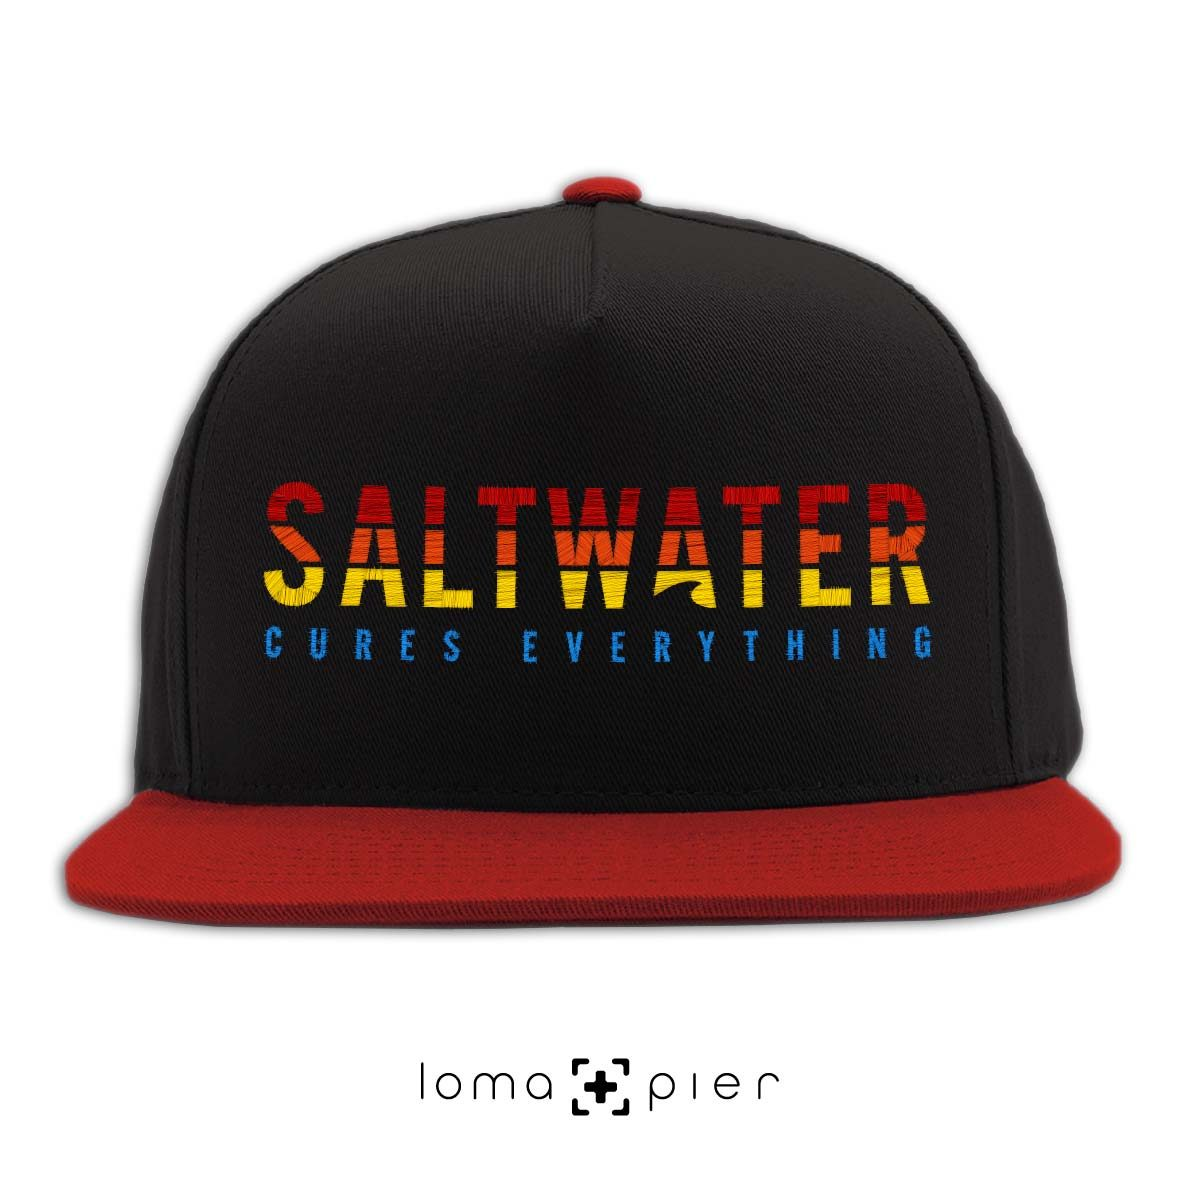 SALTWATER CURES EVERYTHING black red classic snapback hat by loma+pier hat store